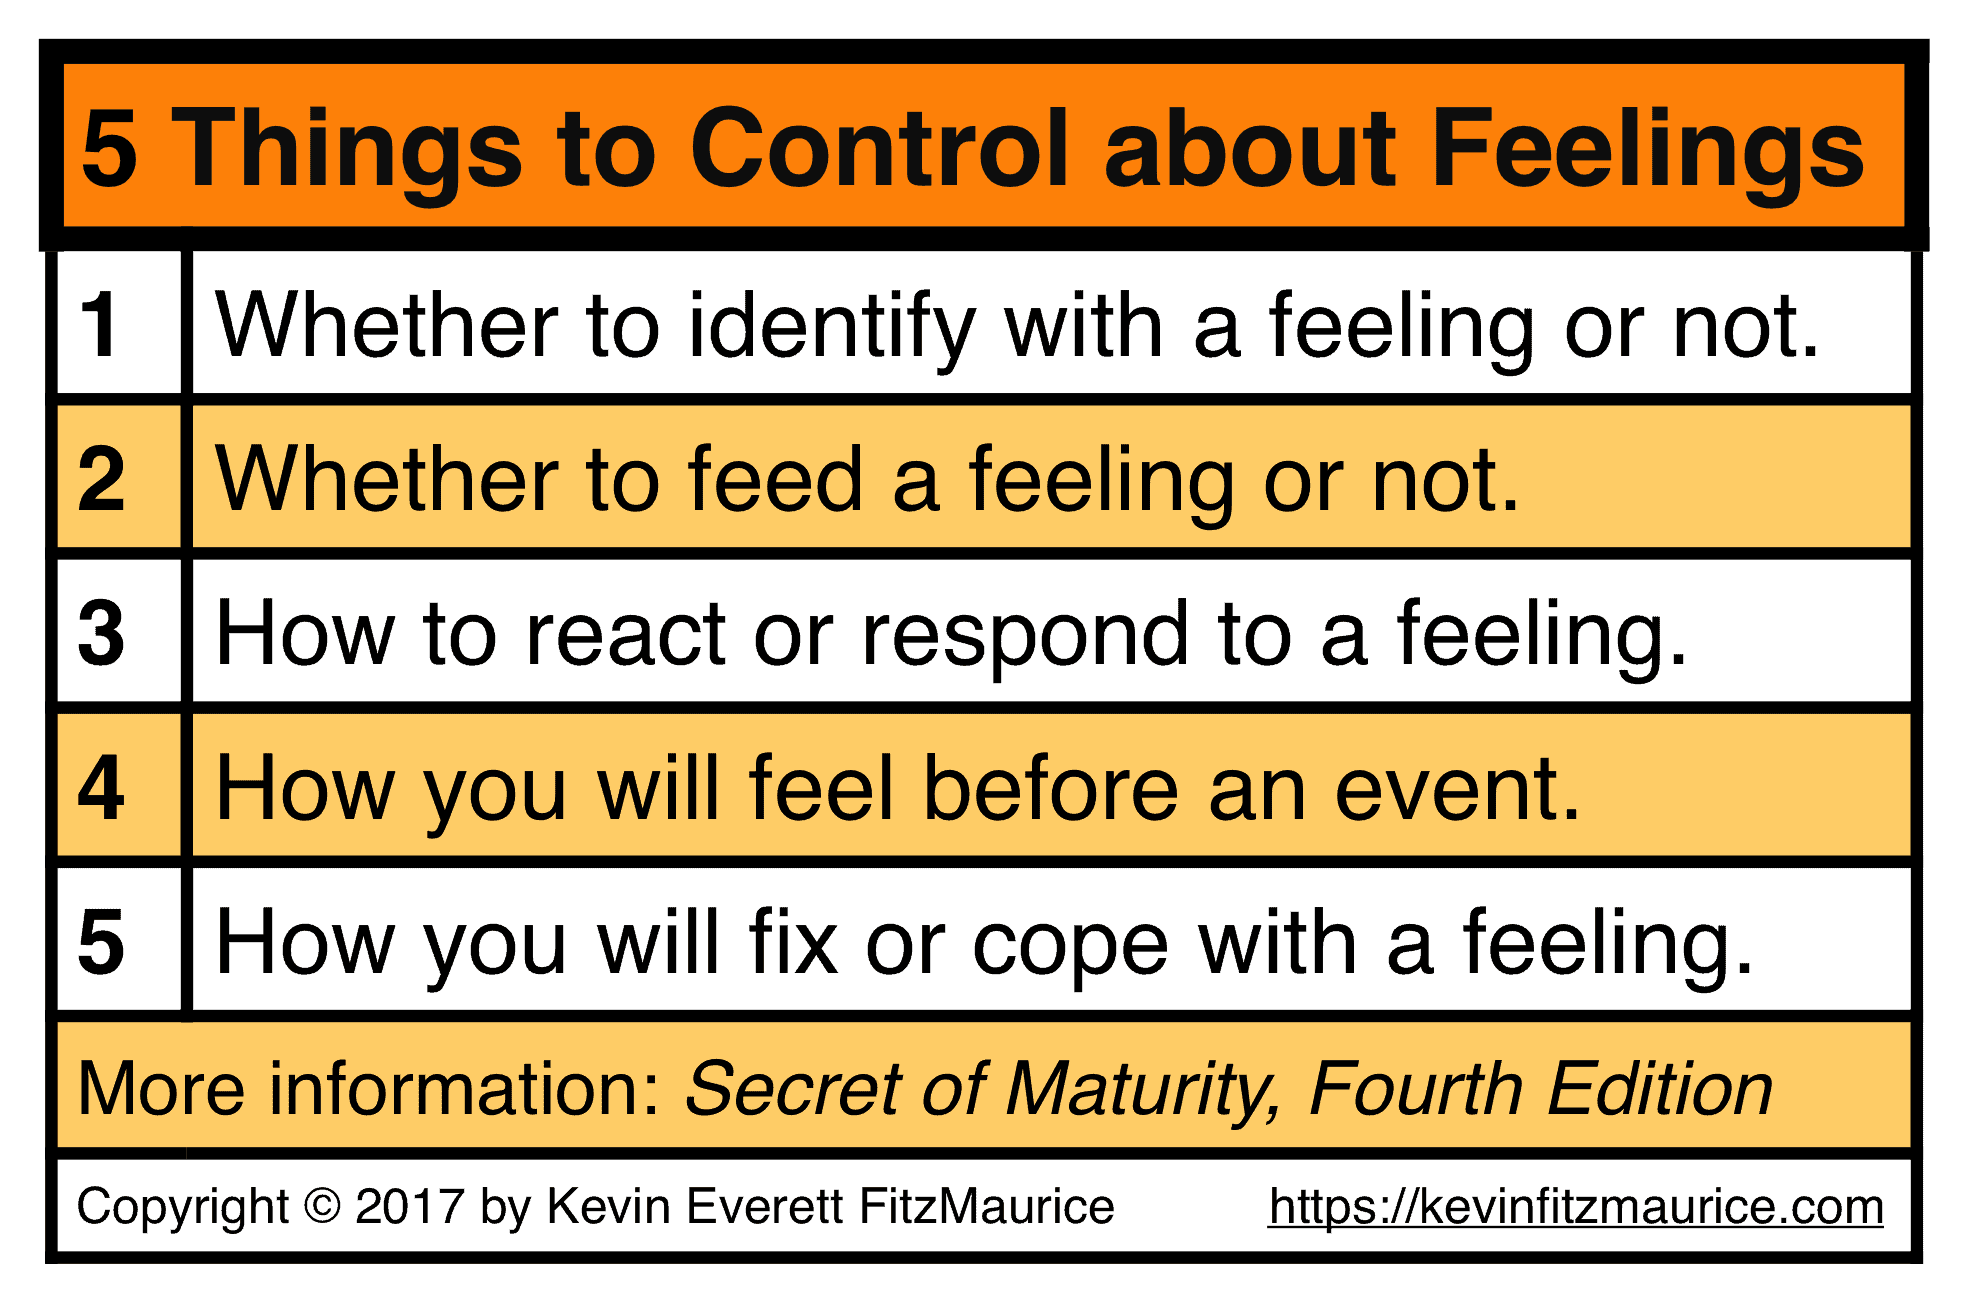 5 Ways to Control Feelings